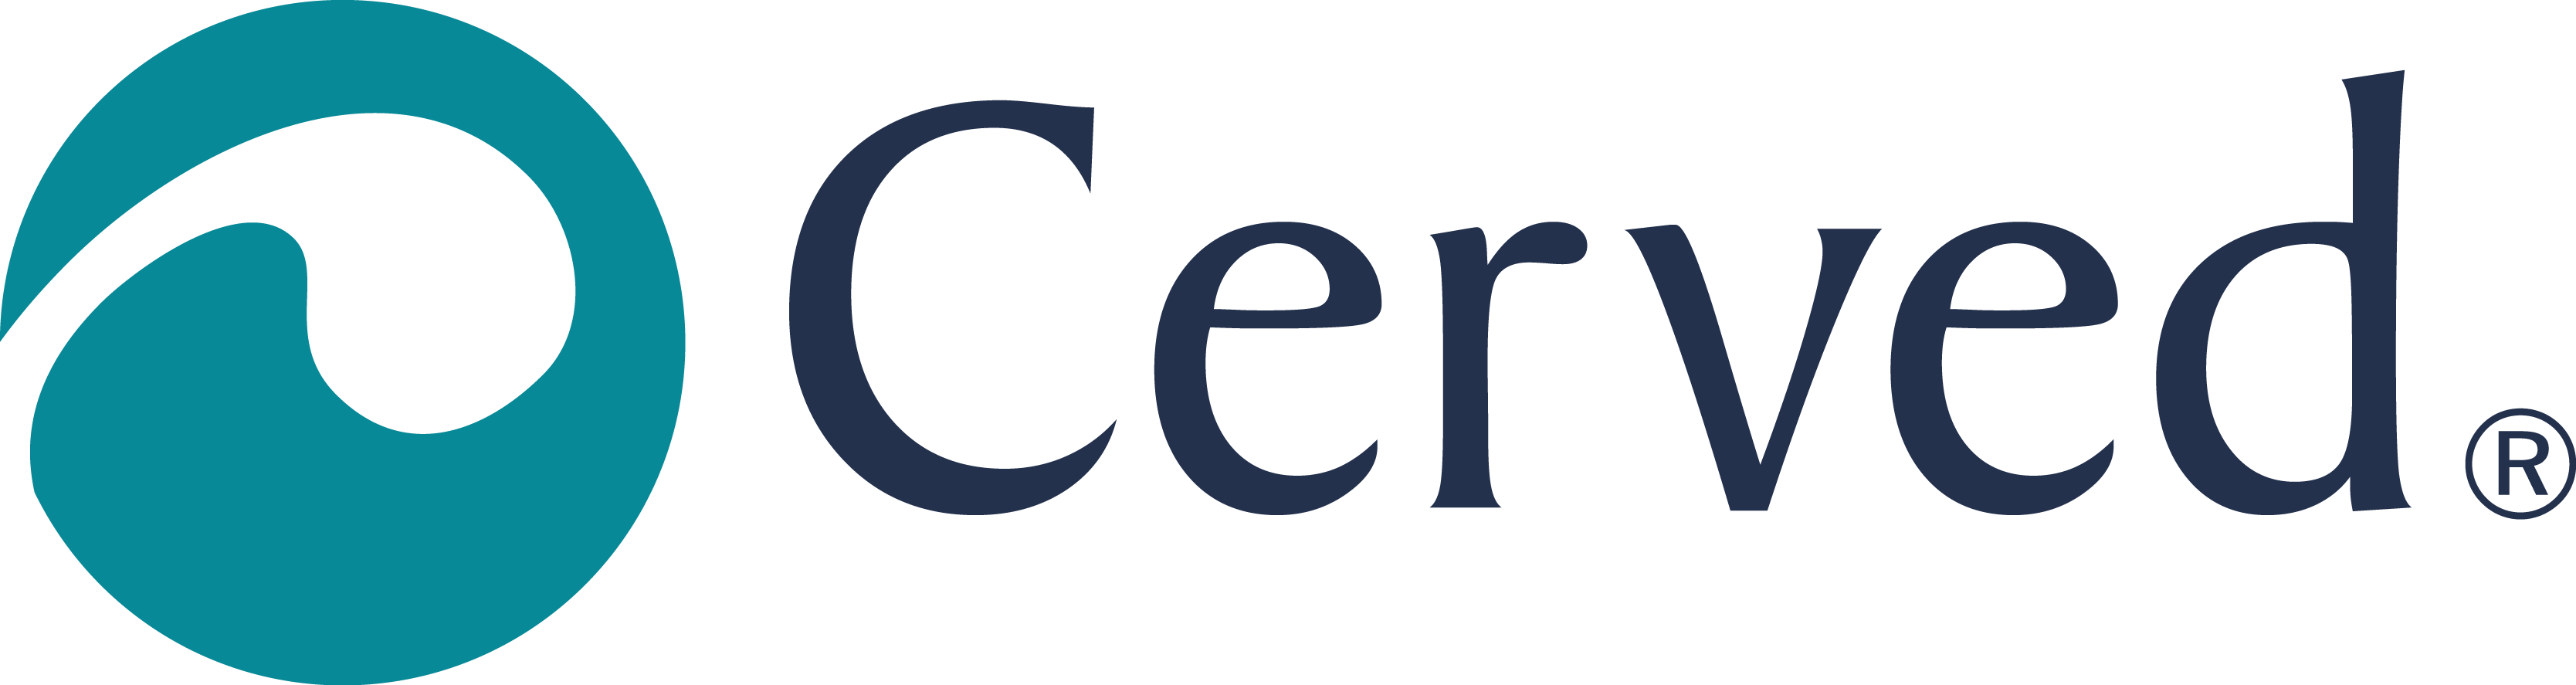 Learn How Cerved Uses Neo4j for Better Business Intellingence